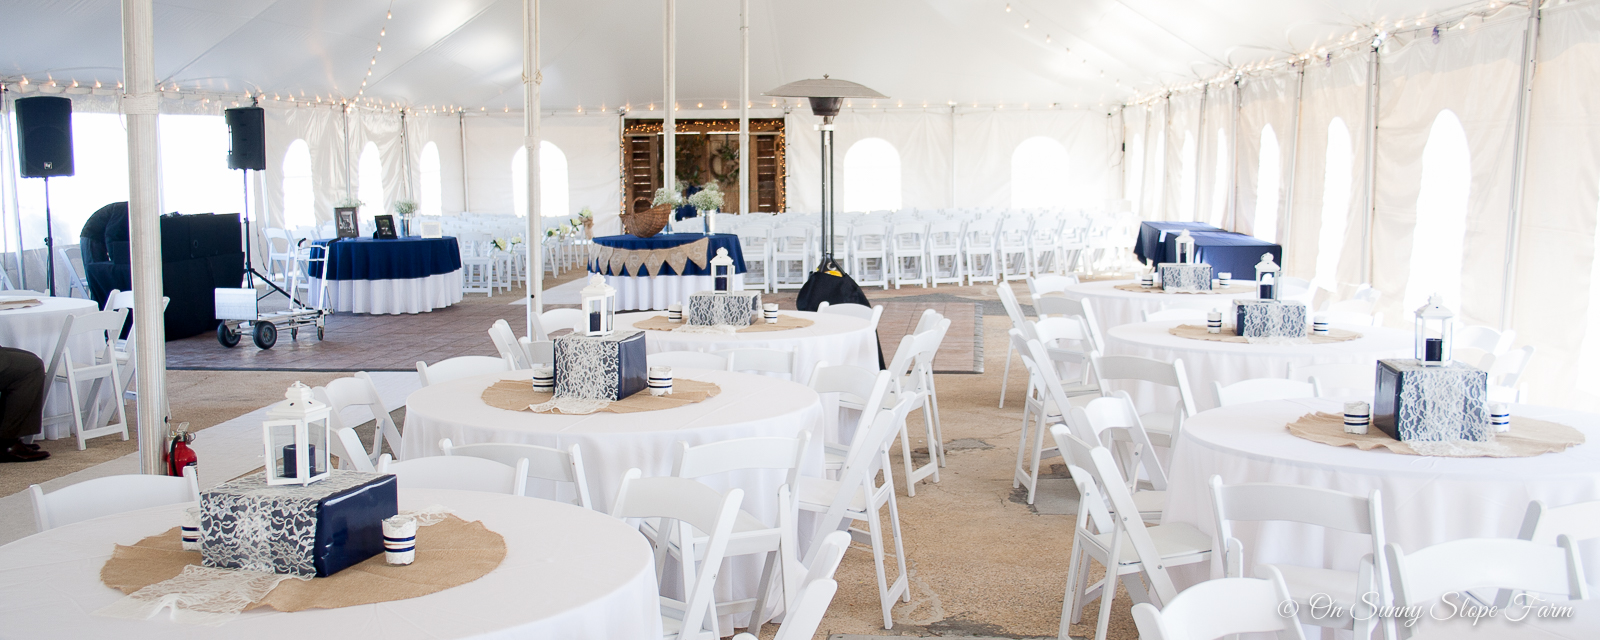 indoor-ceremony-setup-under-tent-on-sunny-slope-farm-1